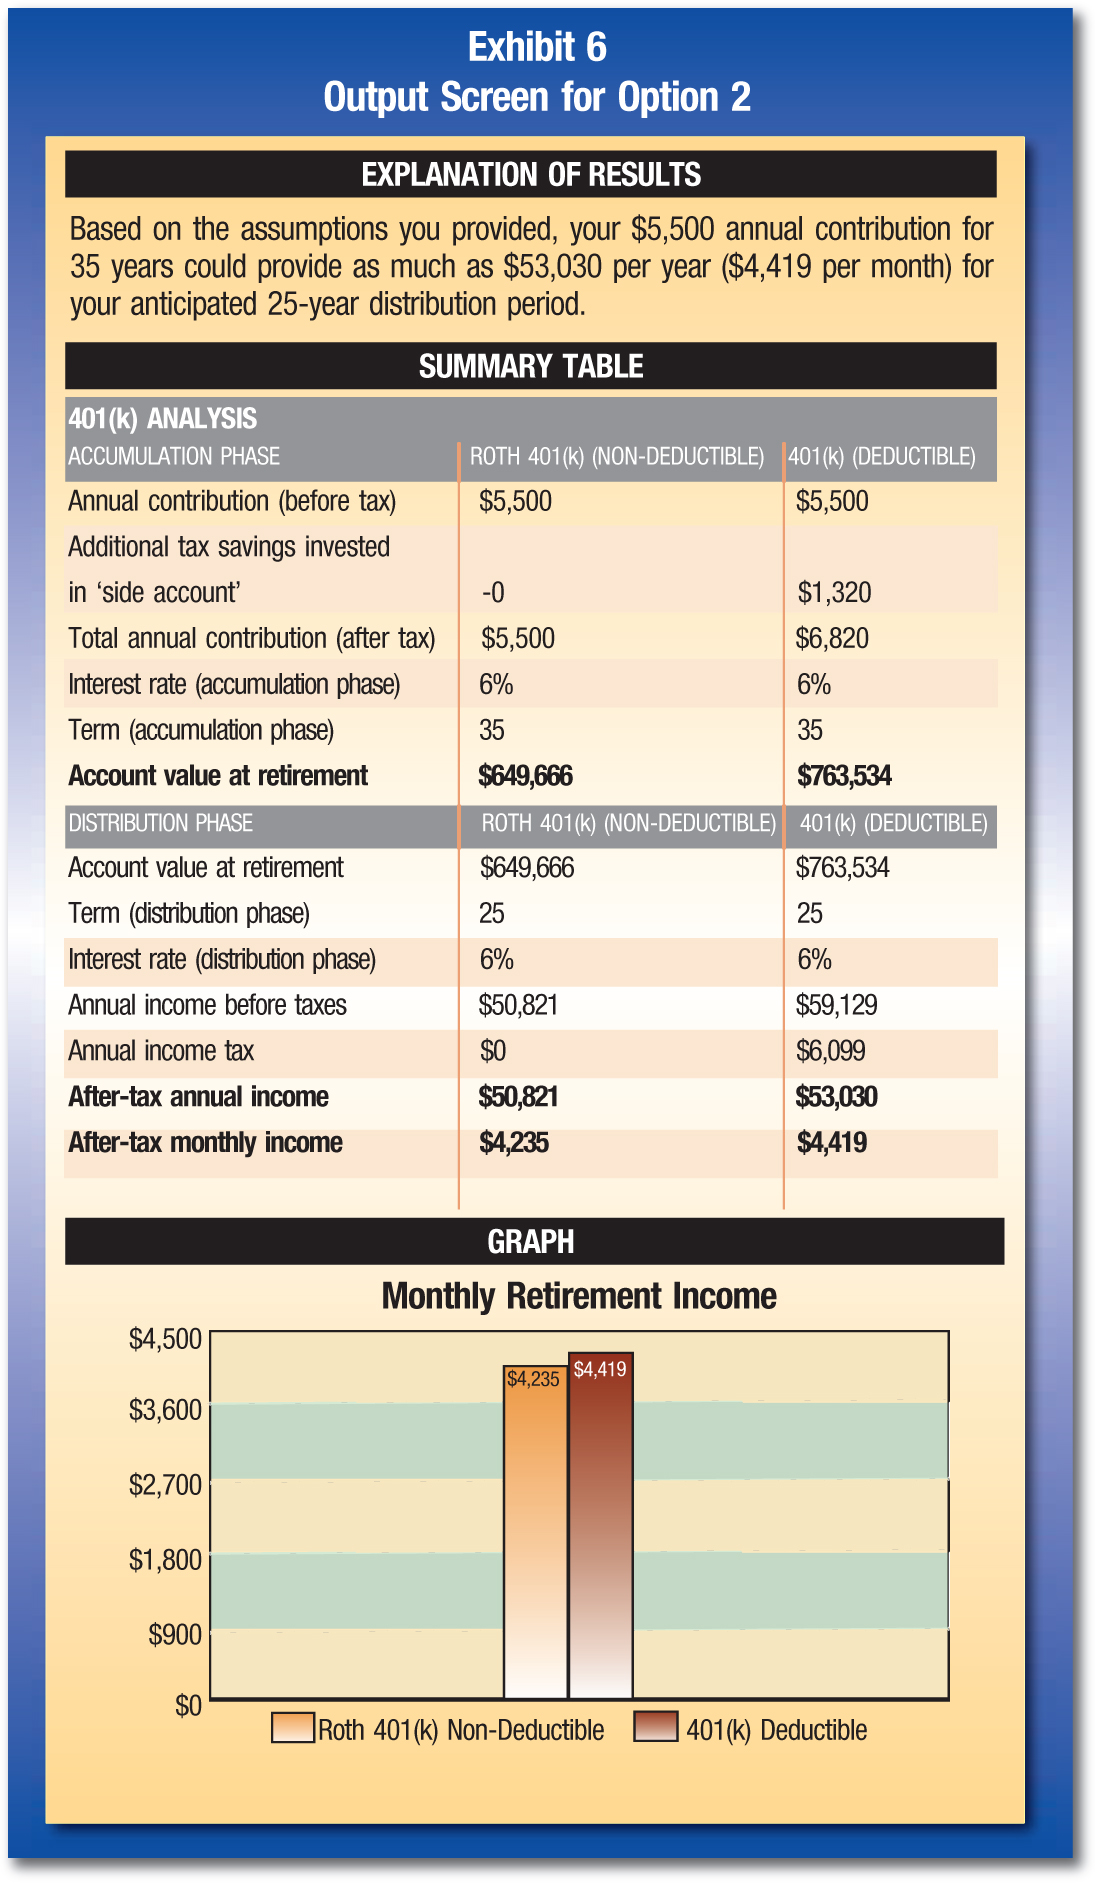 EXPLANATION OF RESULTS Based on the assumptions you provided, your $5,500 annual contribution for 35 years could provide as much as $53,030 per year ($4,419 per month) for your anticipated 25-year distribution period. SUMMARY TABLE 401(k) ANALYSIS ACCUMULATION PHASE; ROTH 401(k) (NON-DEDUCTIBLE); 401(k) (DEDUCTIBLE) Annual contribution (before tax); $5,500; $5,500 Additional tax savings invested in 'side account'; -0; $1,320 Total annual contribution (after tax); $5,500; $6,820 Interest rate (accumulation phase); 6%; 6% Term (accumulation phase); 35; 35 Account value at retirement; $649,666; $763,534 DISTRIBUTION PHASE; ROTH 401(k) (NON-DEDUCTIBLE); 401(k) (DEDUCTIBLE) Account value at retirement; $649,666; $763,534 Term (distribution phase); 25; 25 Interest rate (distribution phase); 6%; 6% Annual income before taxes; $50,821; $59,129 Annual income tax; $0; $6,099 After-tax annual income; $50,821; $53,030 After-tax monthly income; $4,235; $4,419 GRAPH Monthly Retirement Income